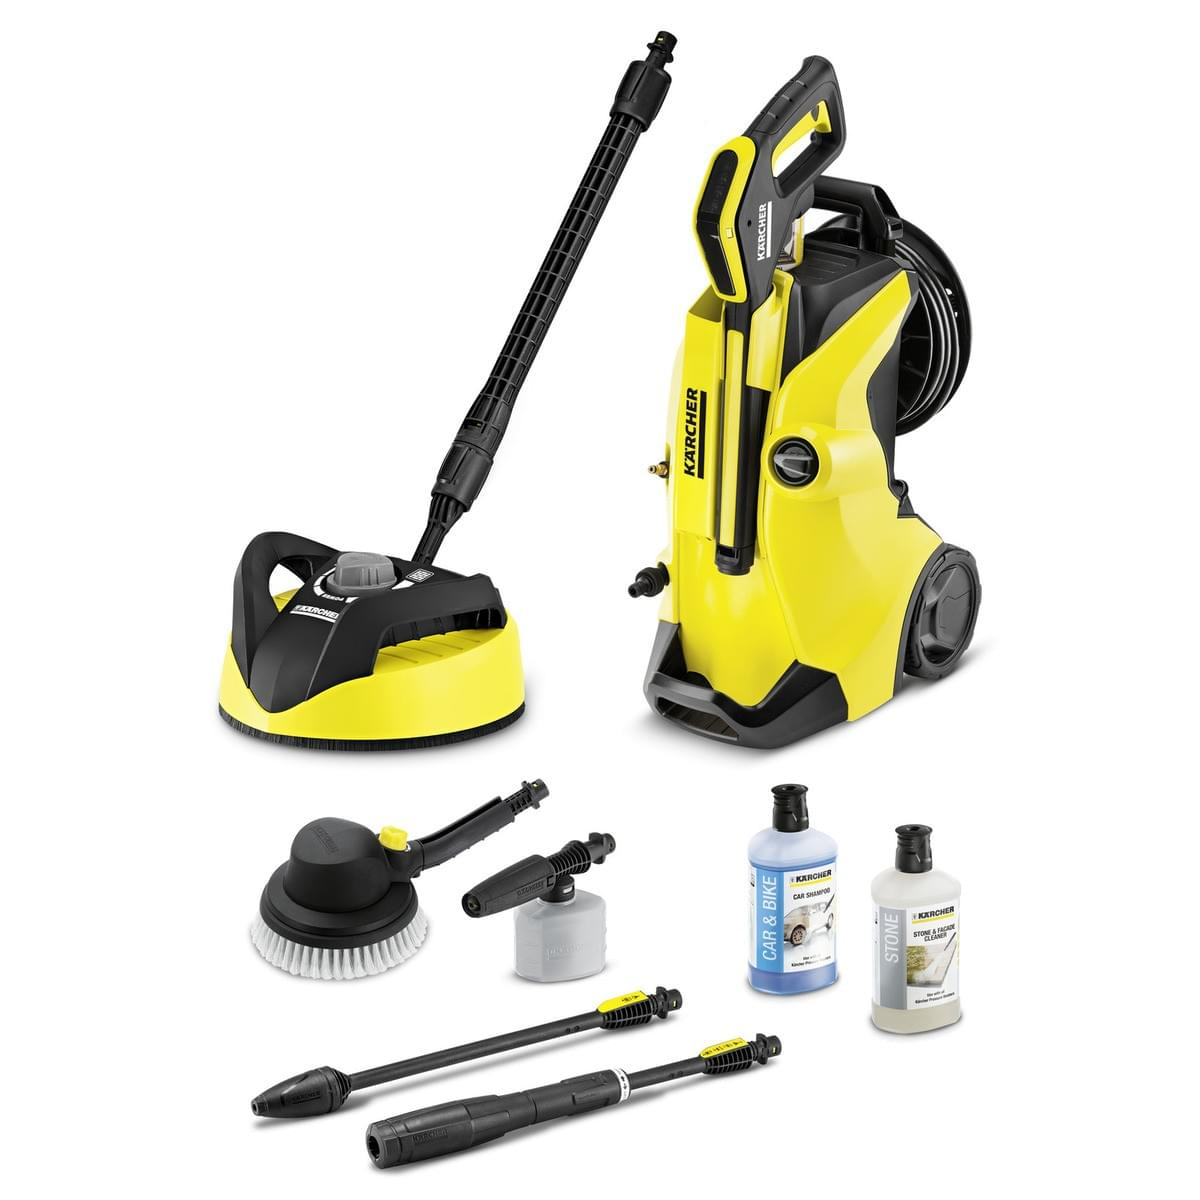 МИНИМОЙКА Karcher K 4 PREMIUM FC CAR & HOME